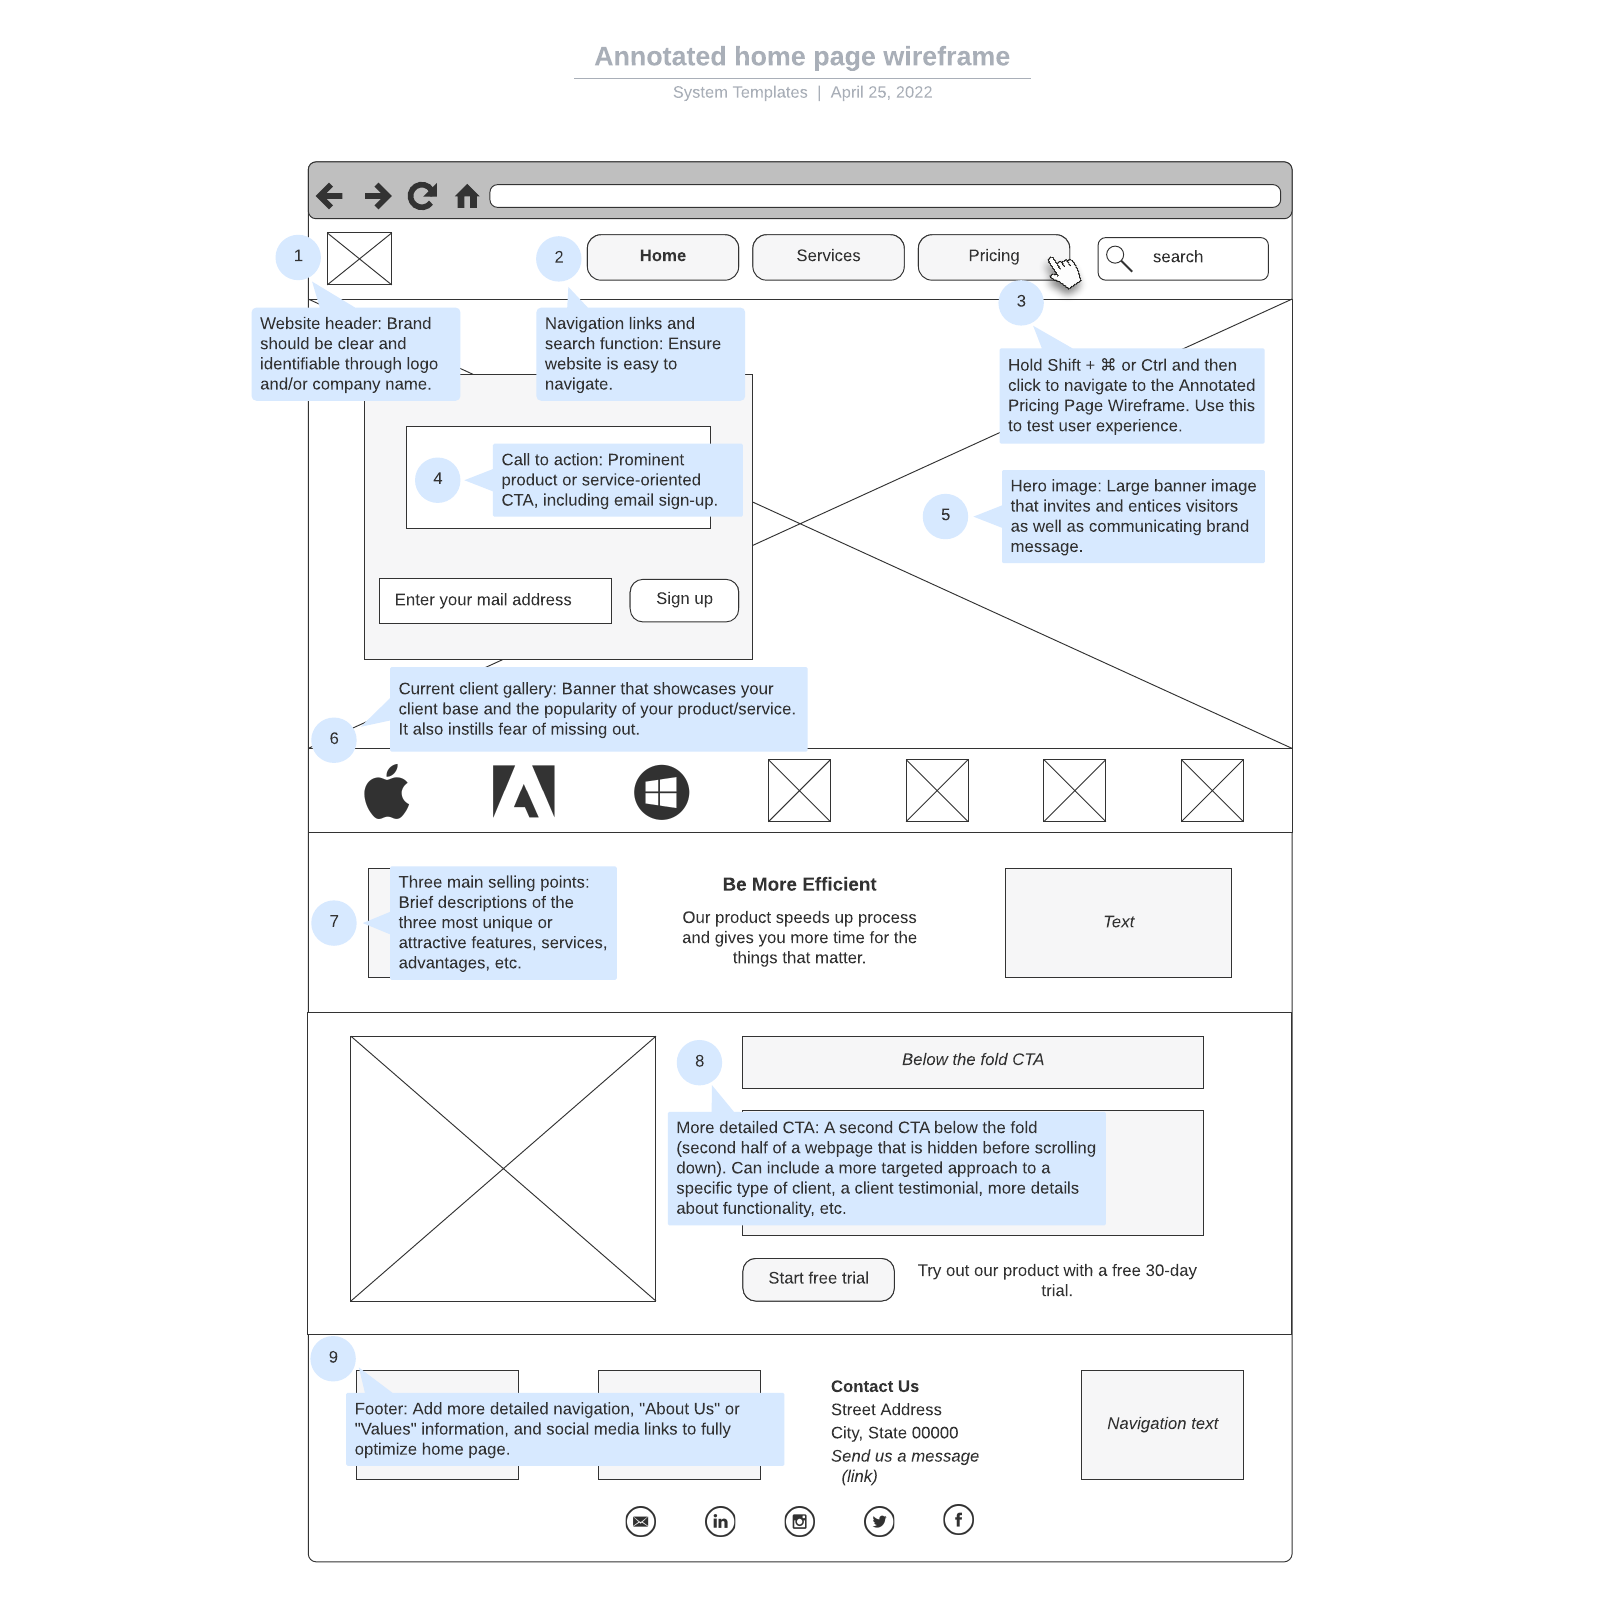 Annotated home page wireframe